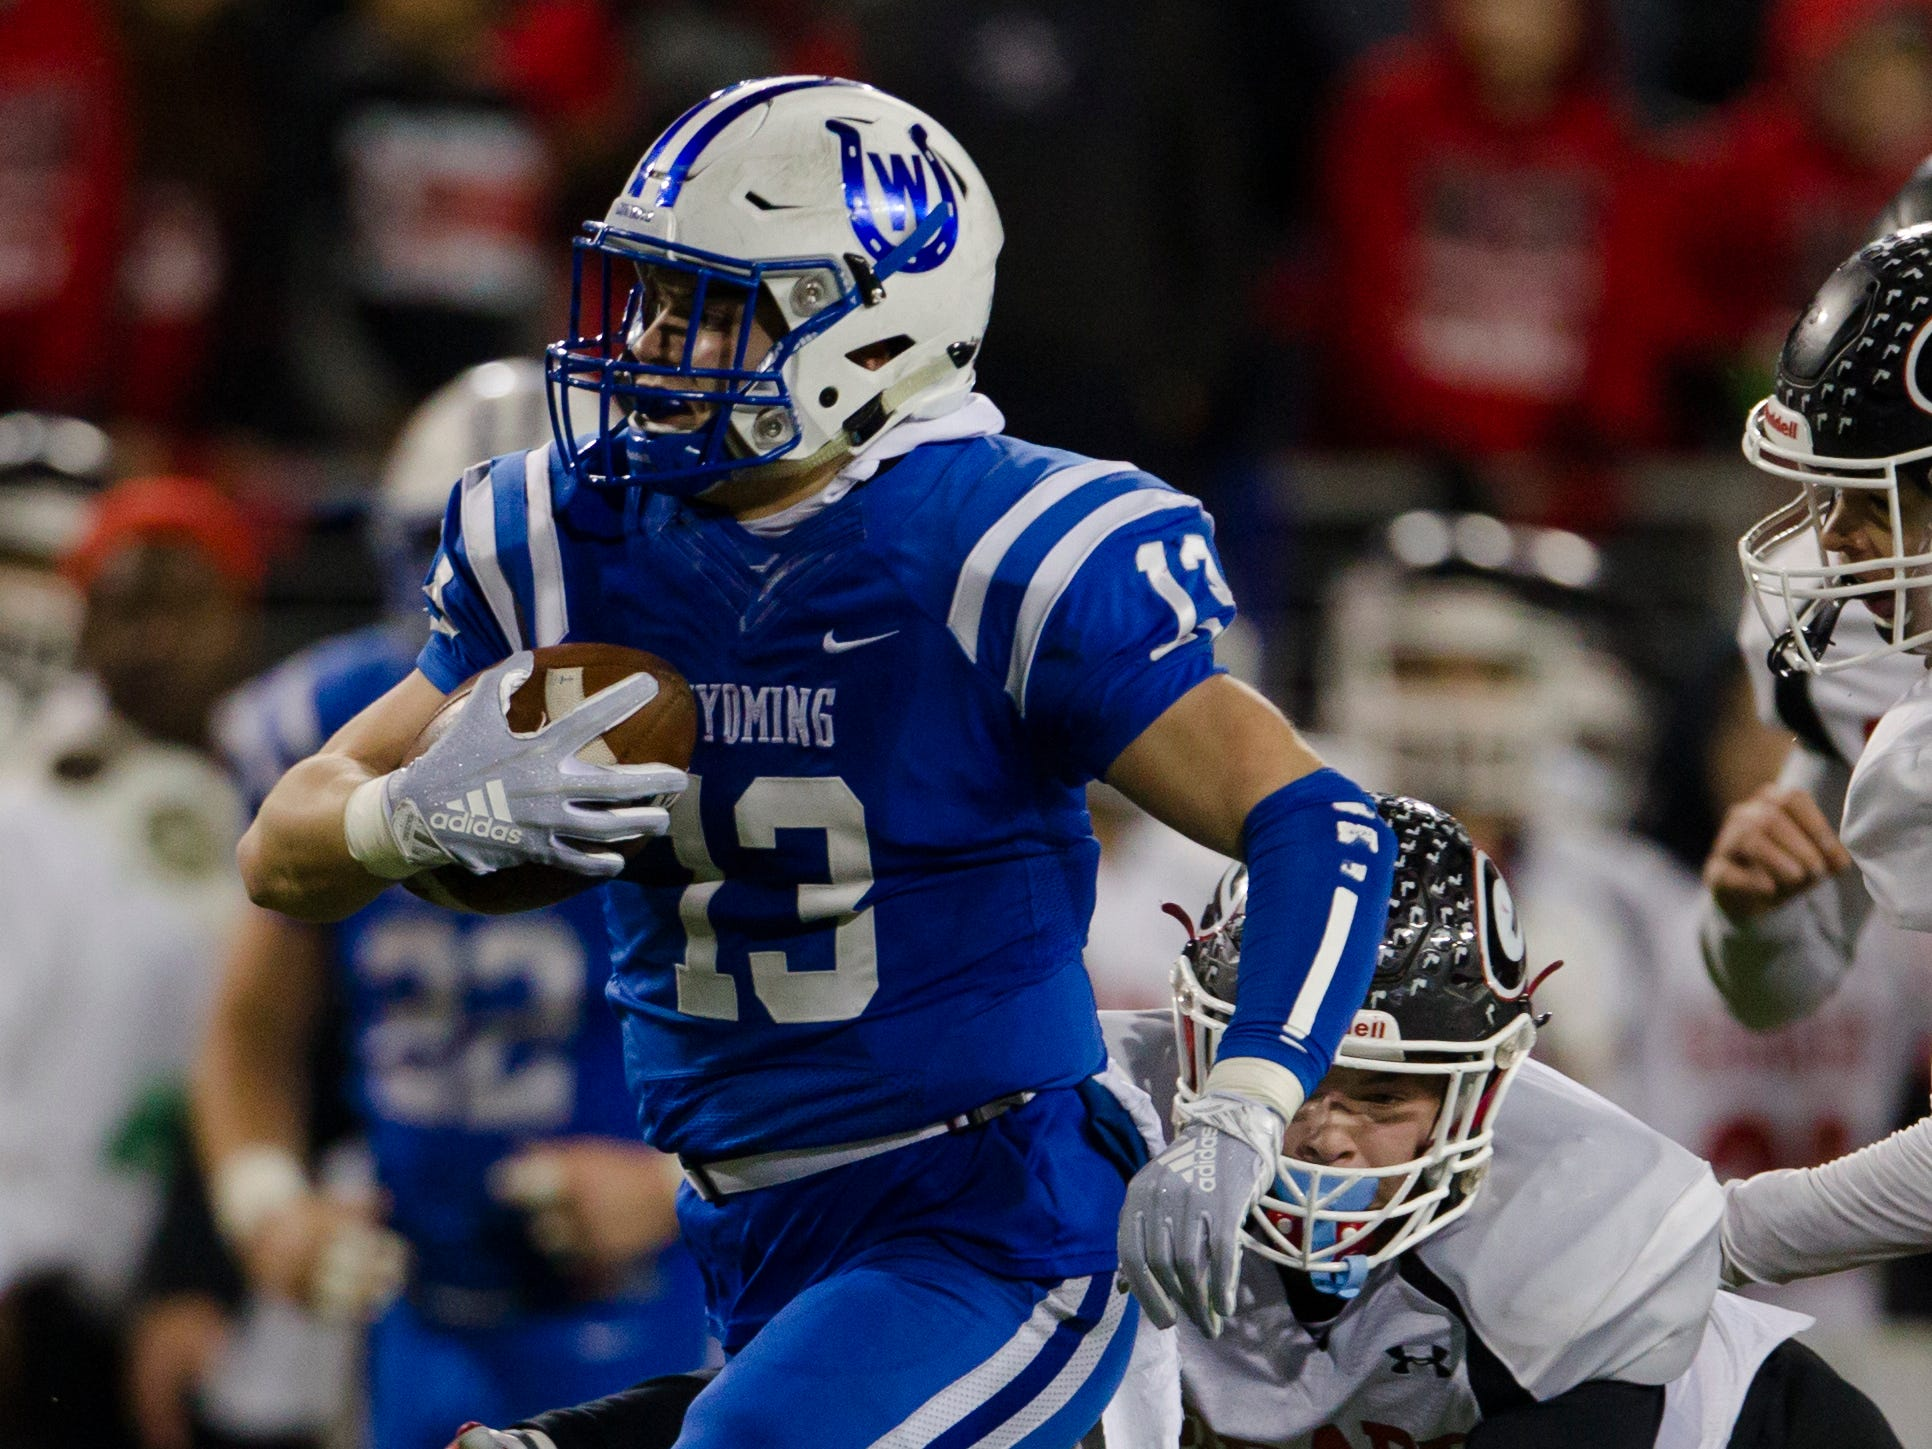 Wyoming's  Joey Edmonds (13) runs downfield during the first half of the OHSAA Division IV State Championship football game between Wyoming and Girard on Saturday, Dec. 1, 2018, at Tom Benson Stadium in Canton.